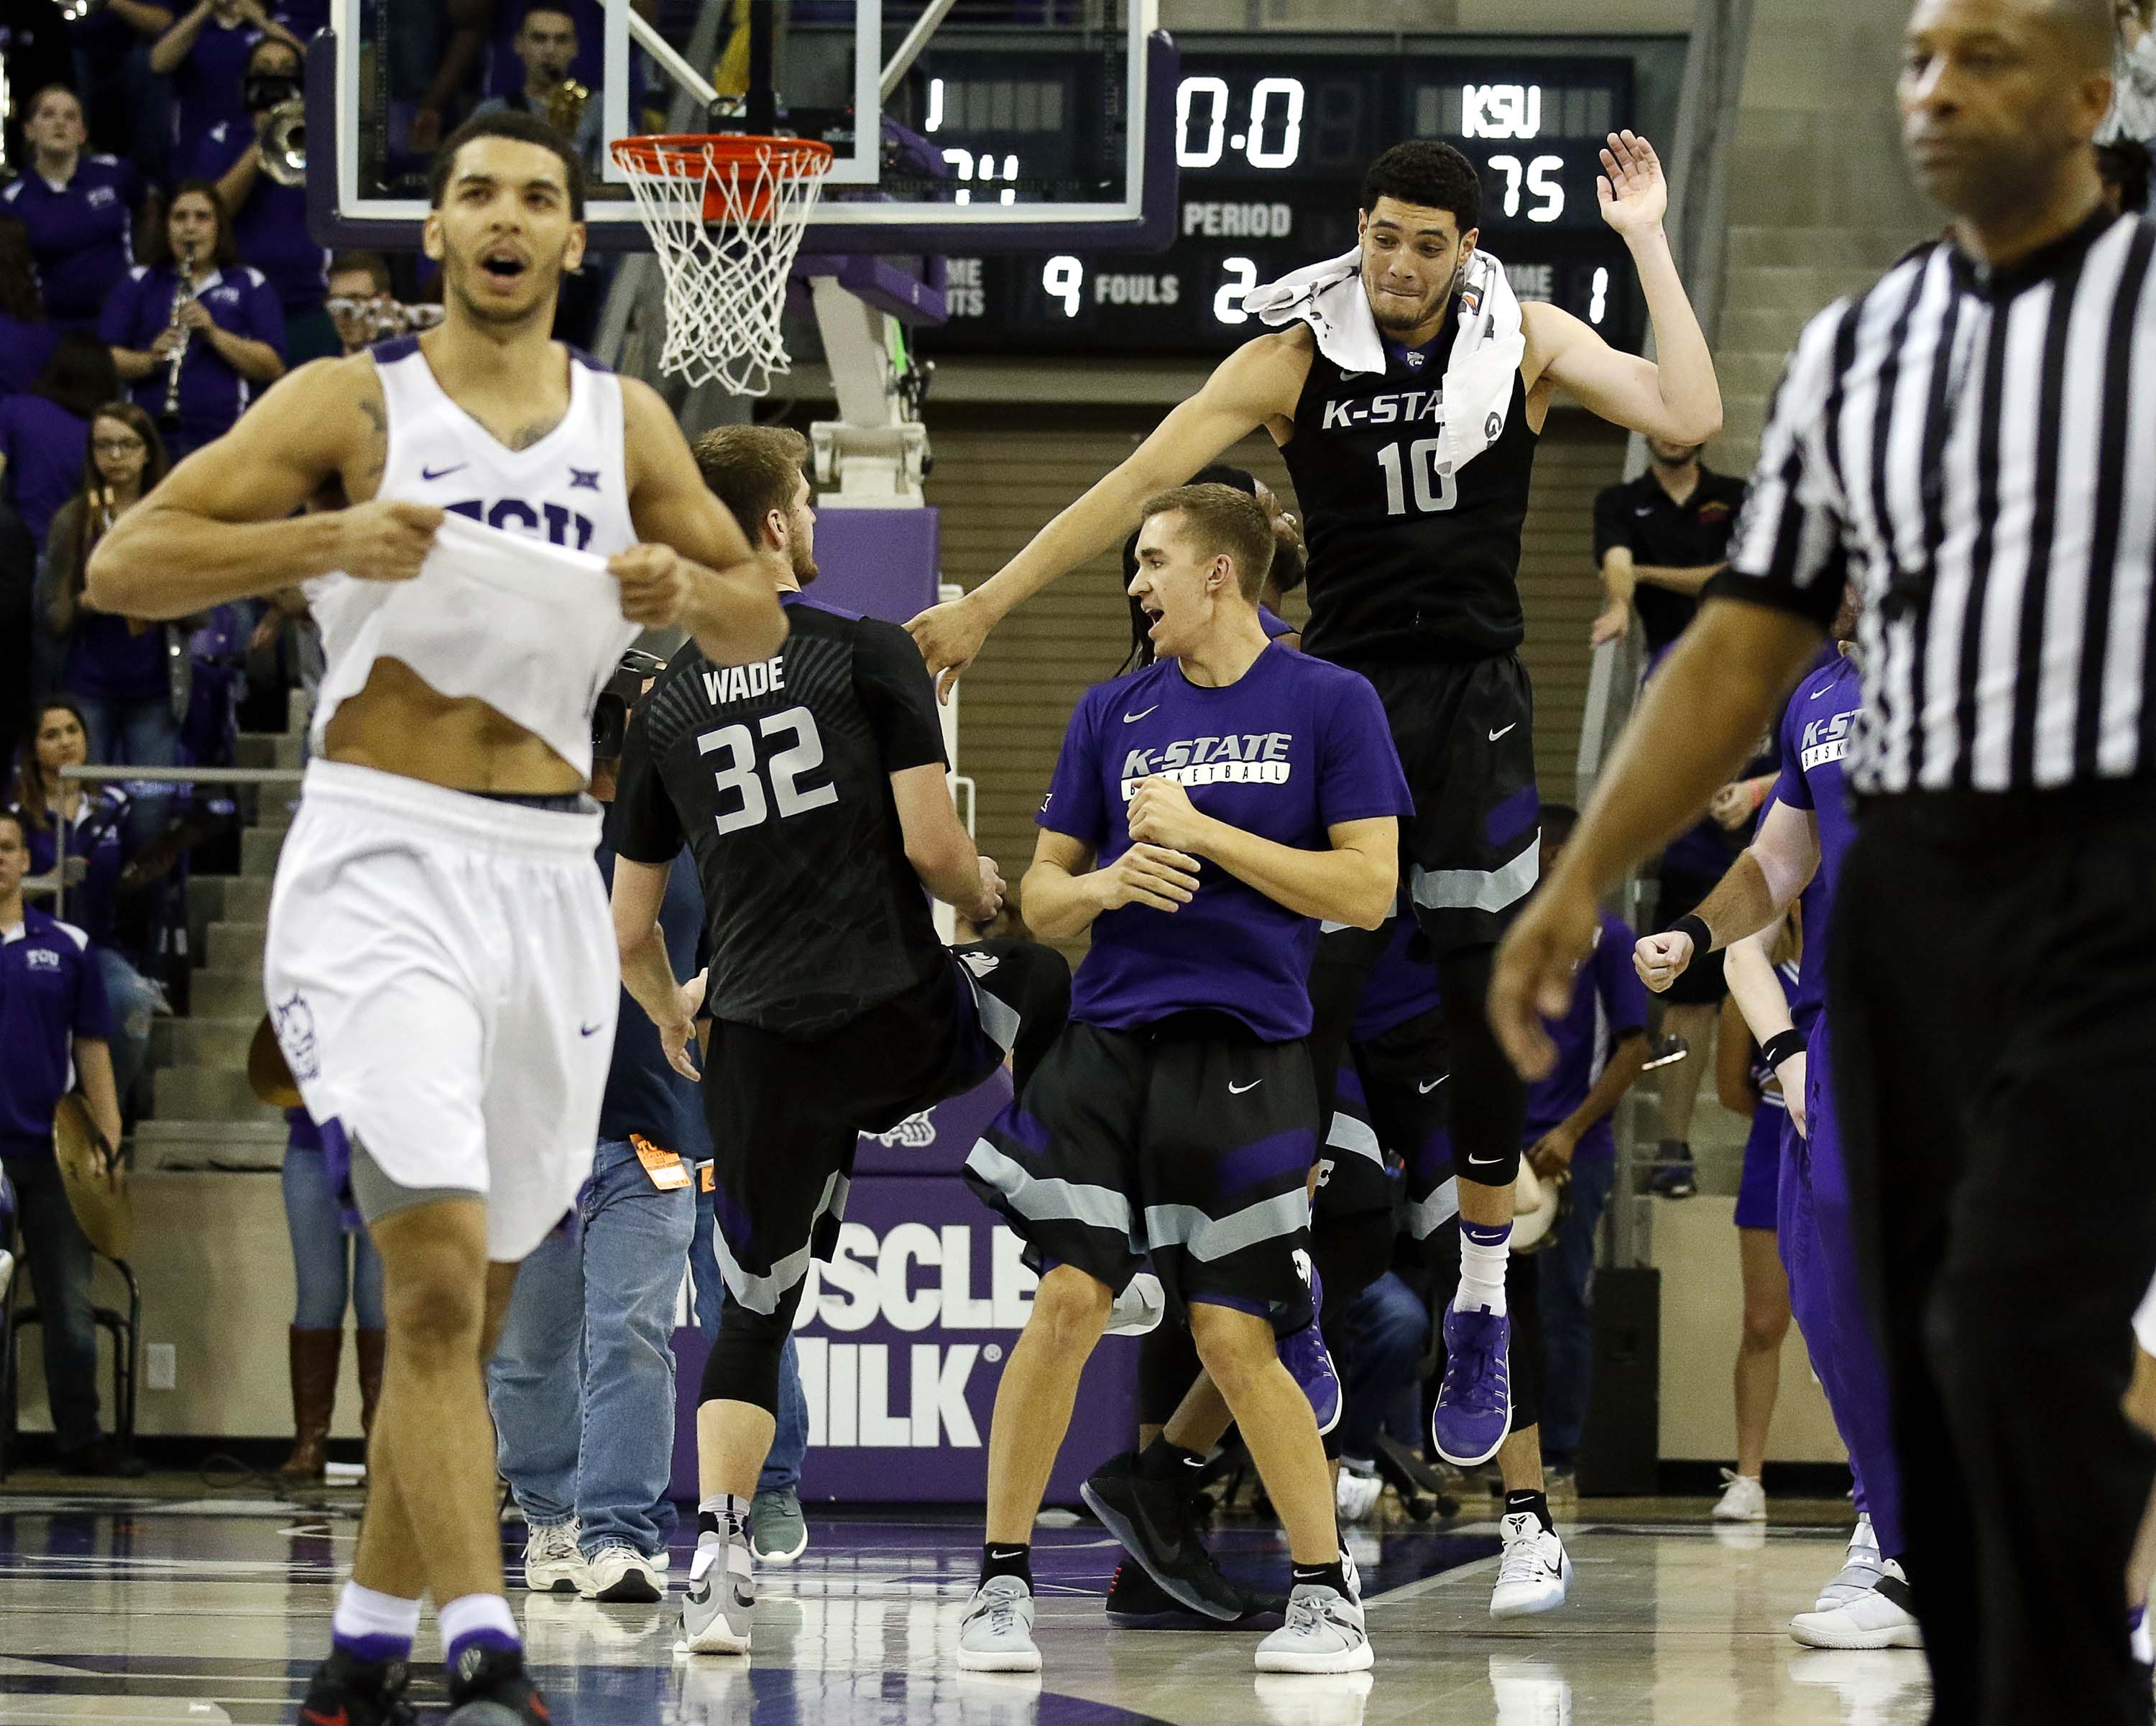 9910775-ncaa-basketball-kansas-state-at-texas-christian